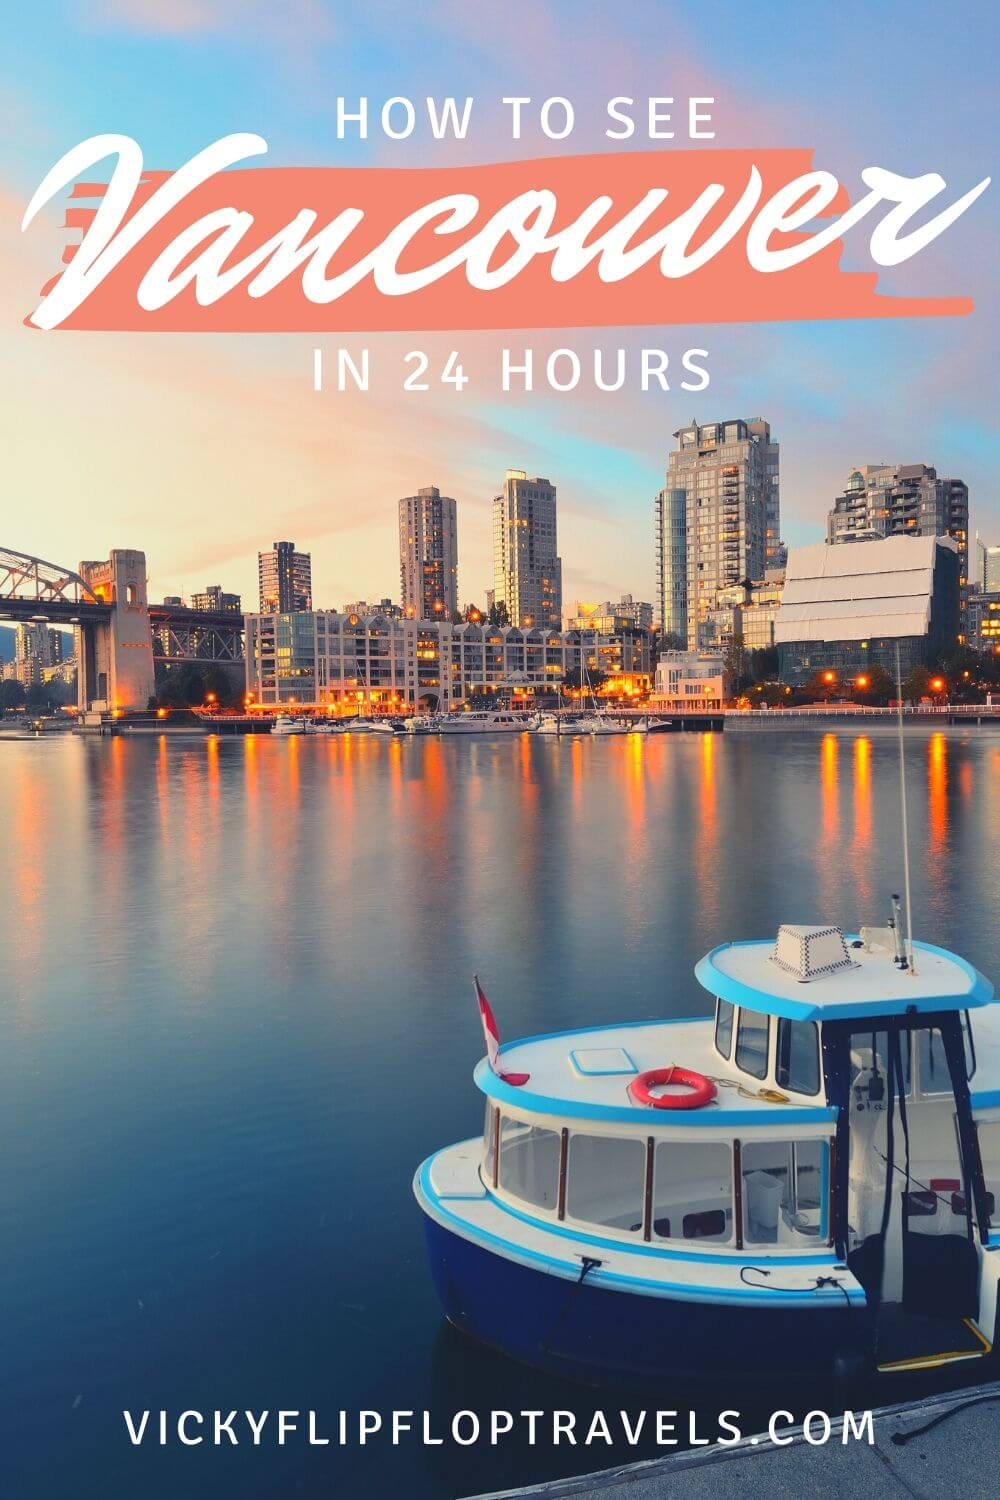 HOW TO SEE VANCOUVER IN A DAY